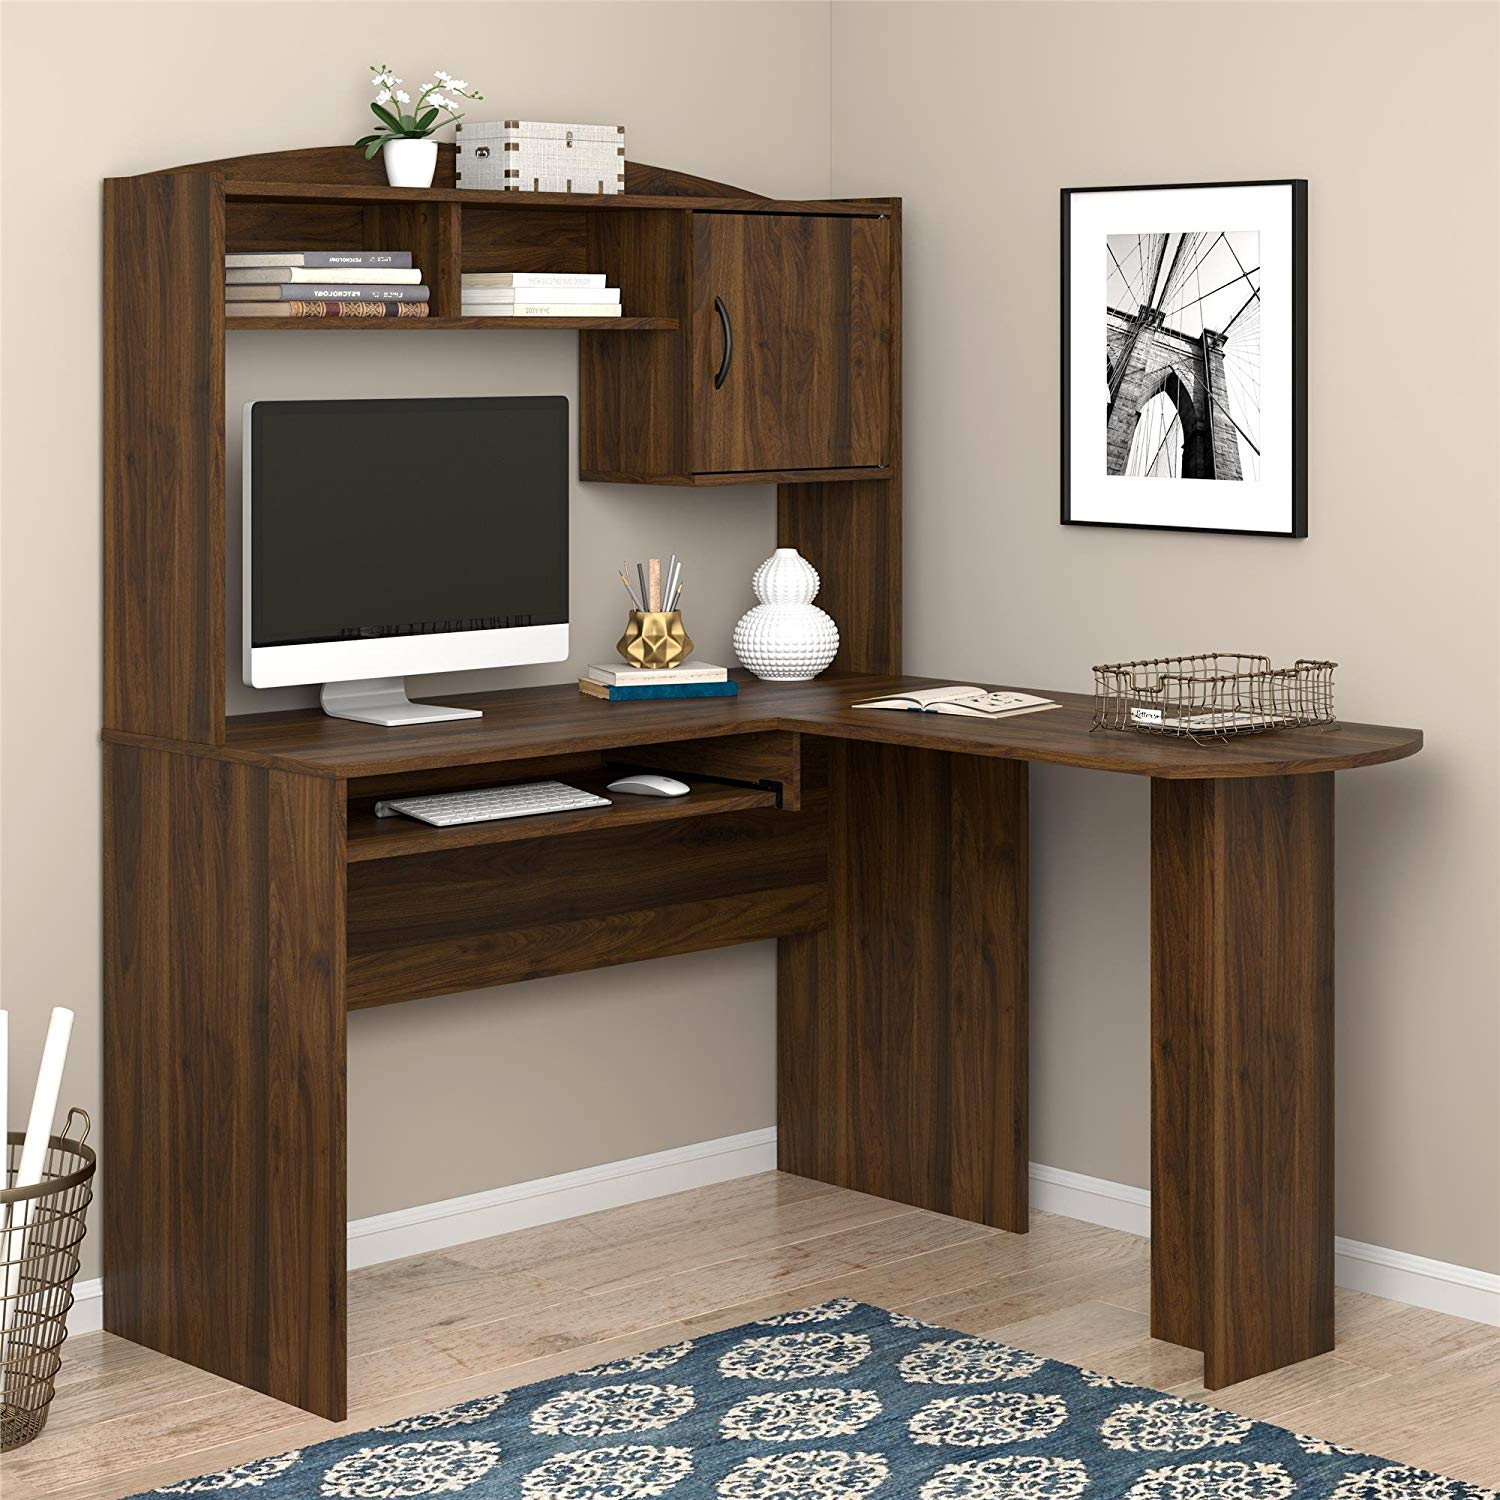 Multi-functional L-Shaped Desk with Hutch Made of Wood, Storage Cabinet and Two Shelves, Slide-out Keyboard Tray, Made to Fit in a Corner, Walnut + Expert Home Guide